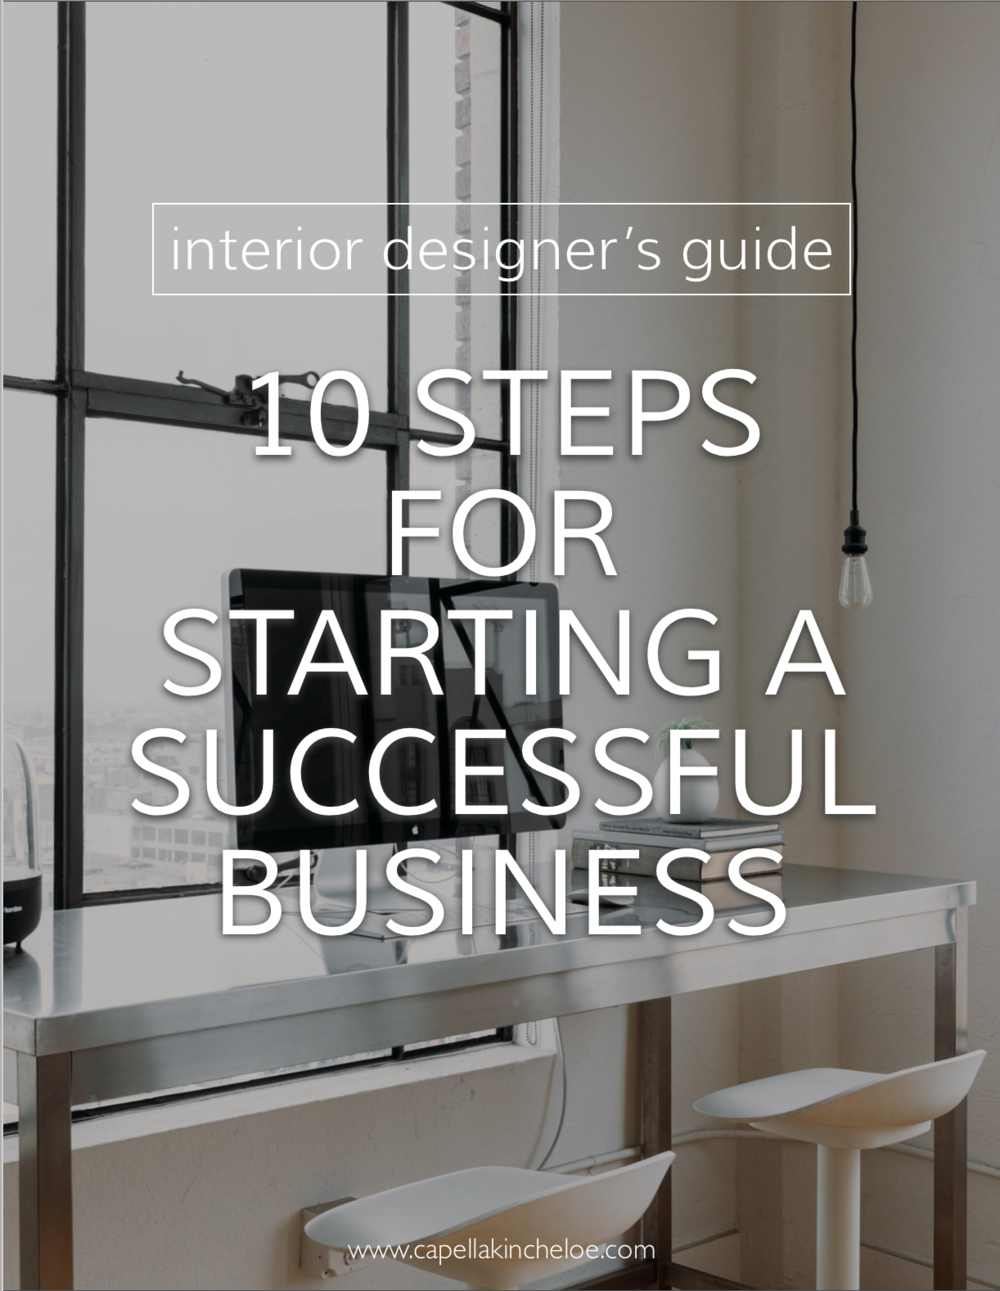 You Can Start A Successful Interior Design Business. U0026nbsp;Here Are Some